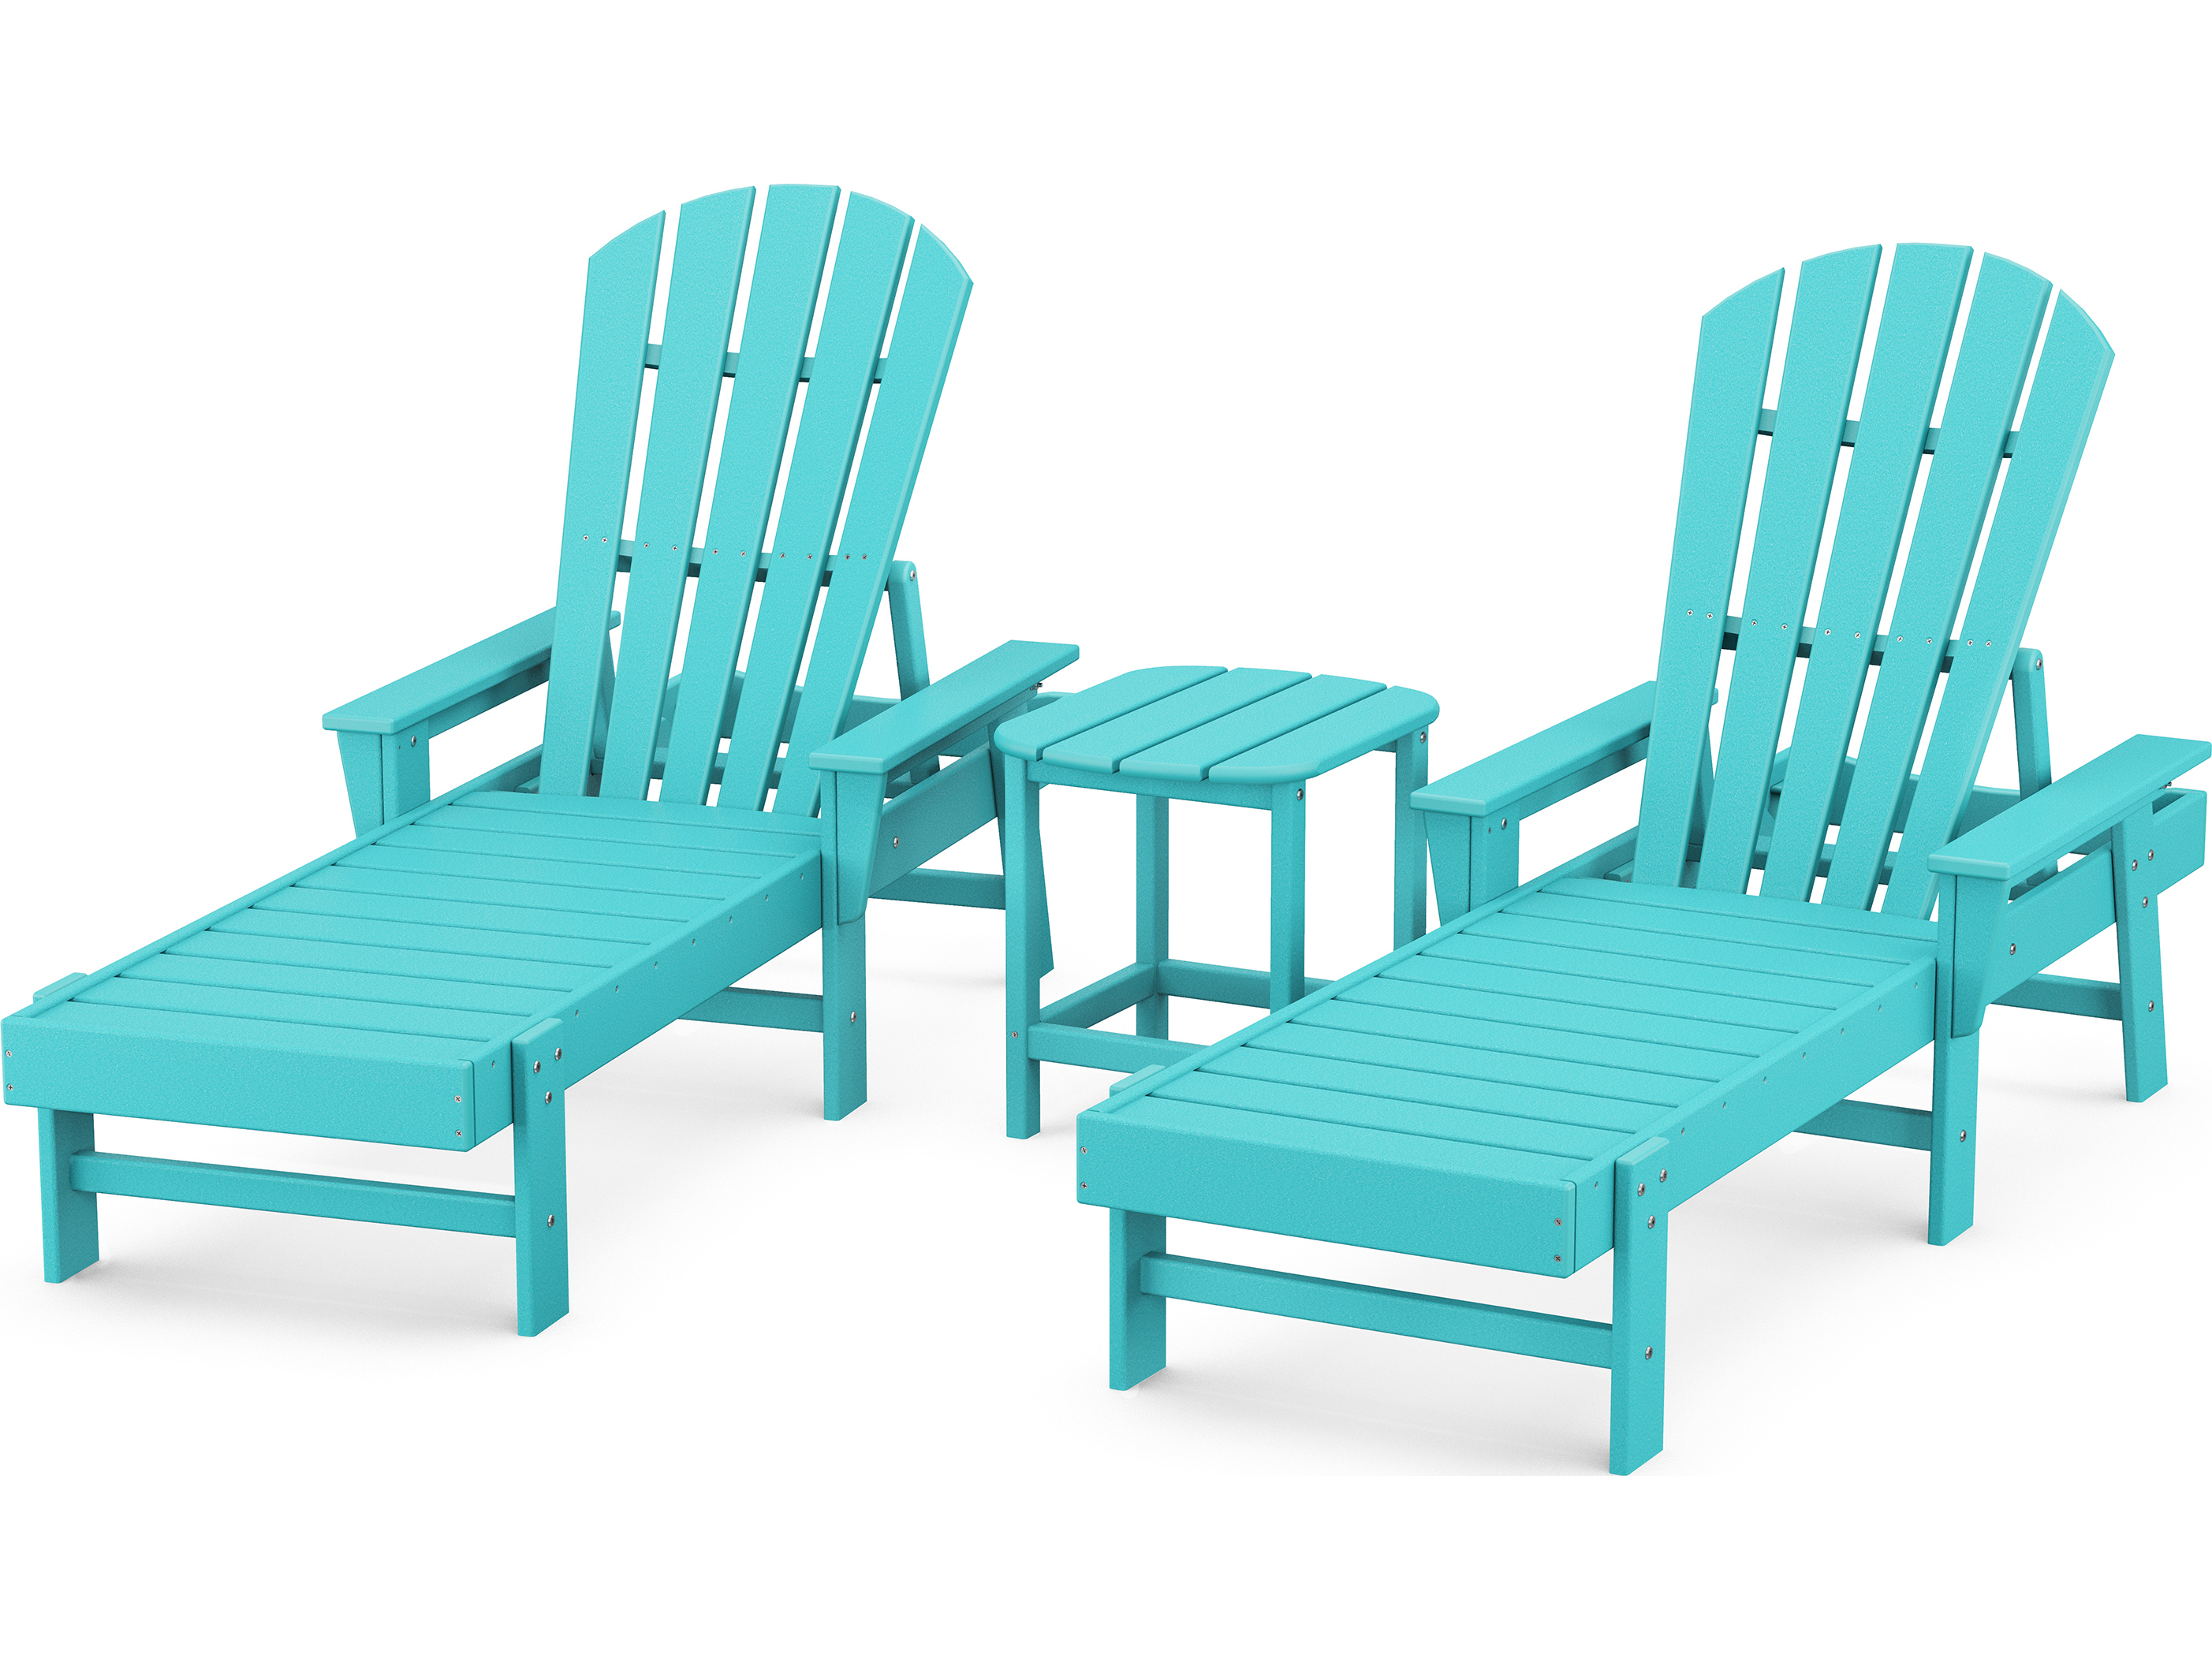 Polywood South Beach Recycled Plastic Chaise 3 Piece Set